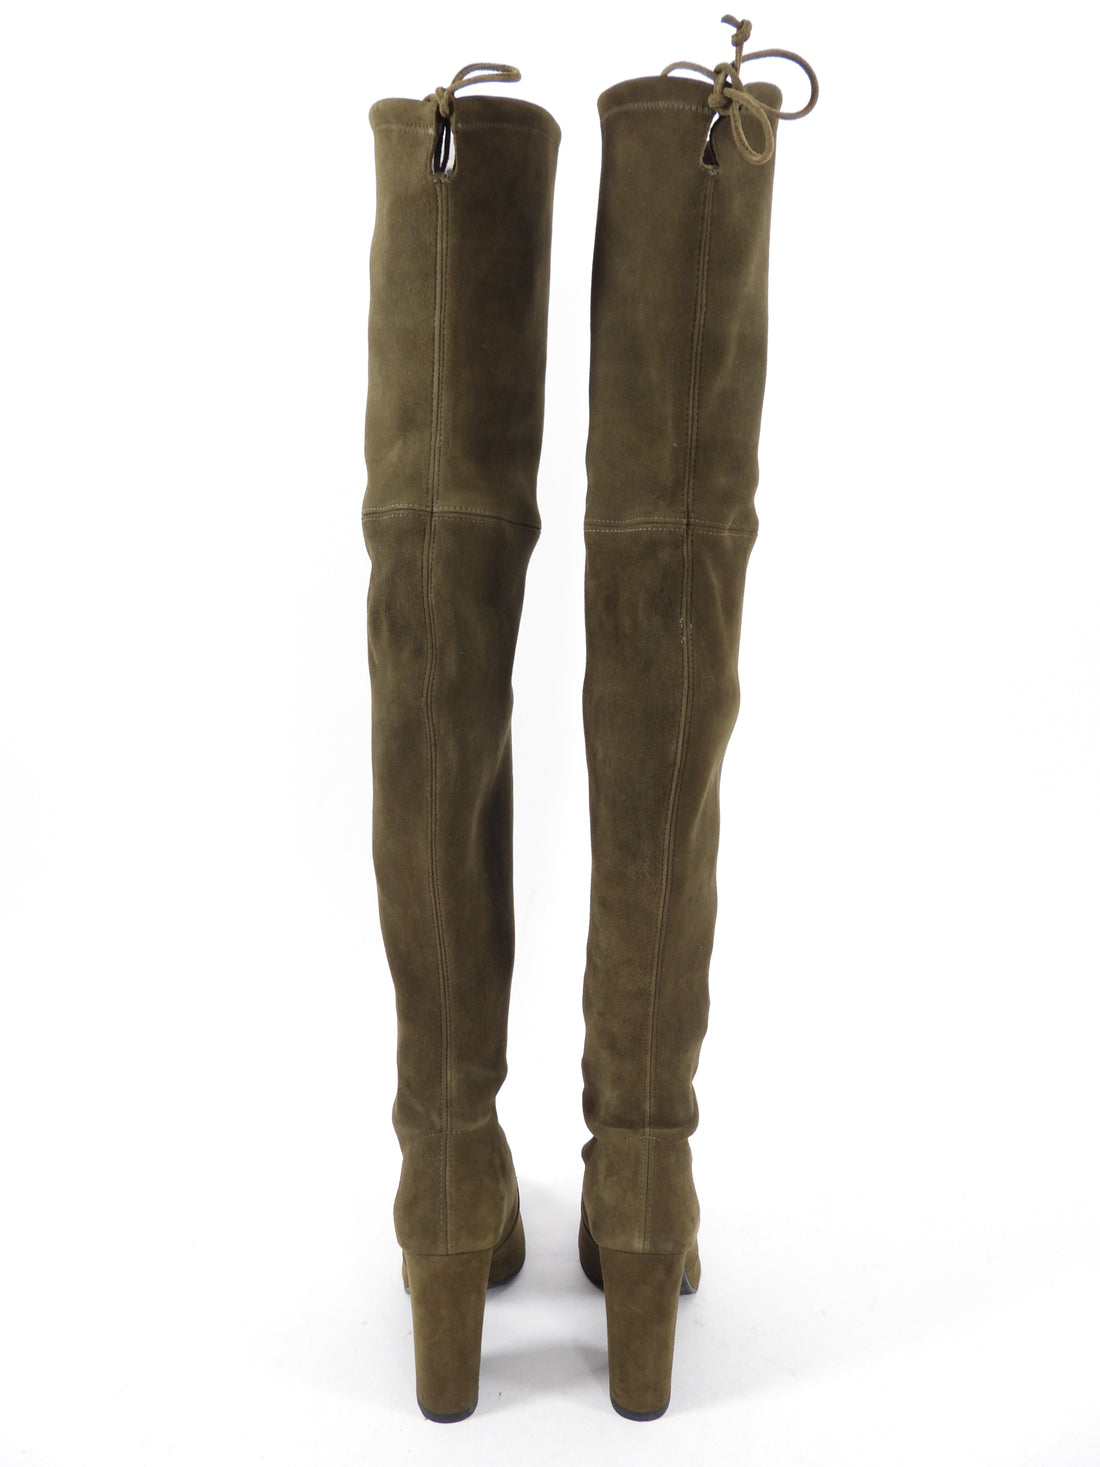 Stuart Weitzman Olive Suede Hi Street Over the Knee Boots - USA 8